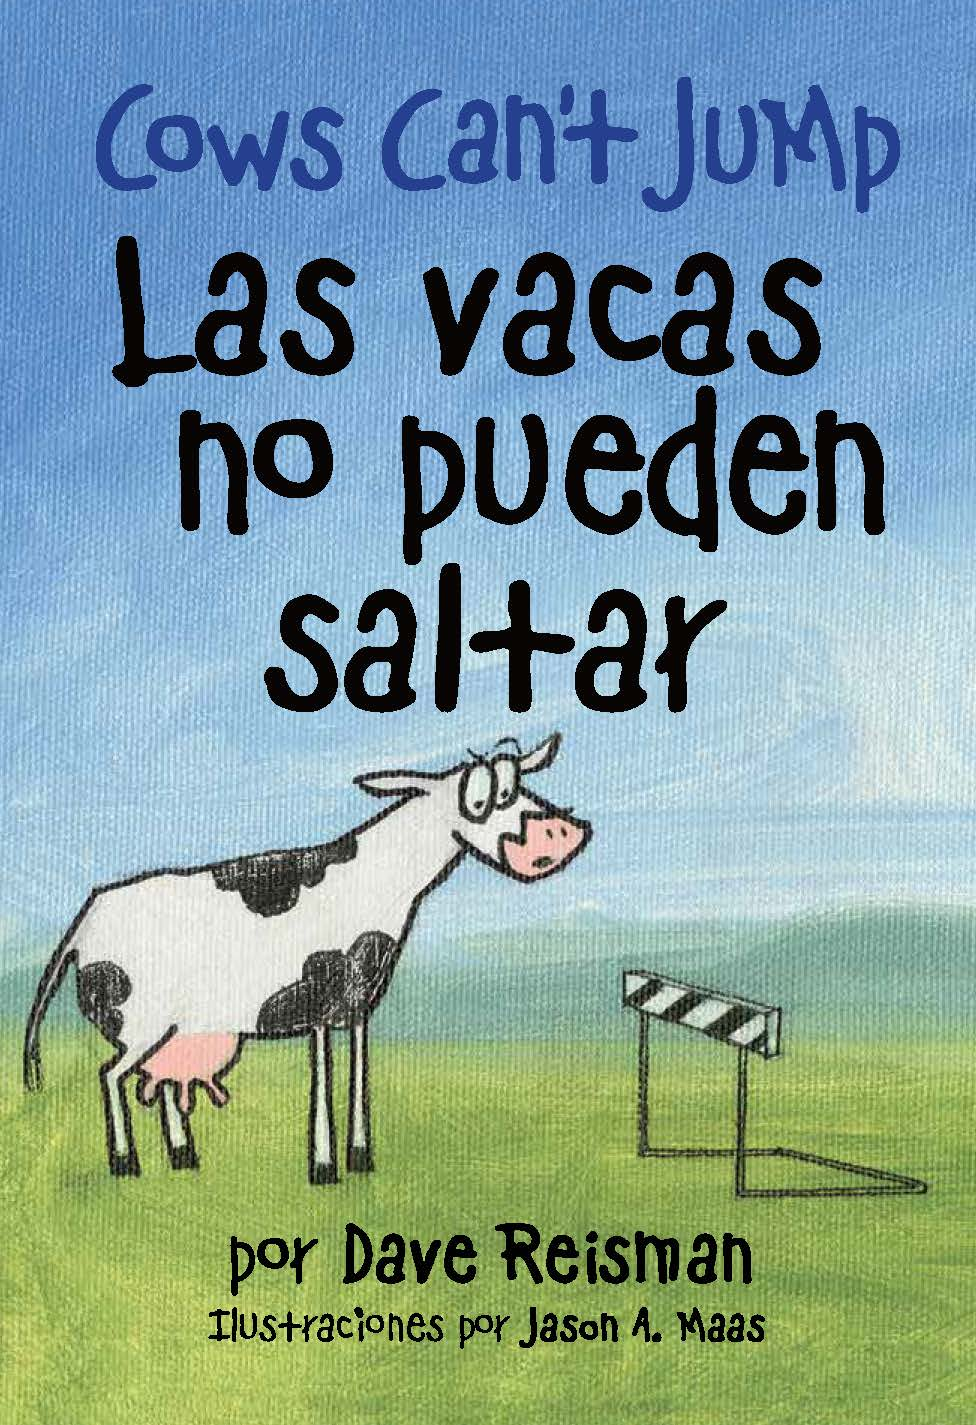 Cows can't jump (Spanish and English)